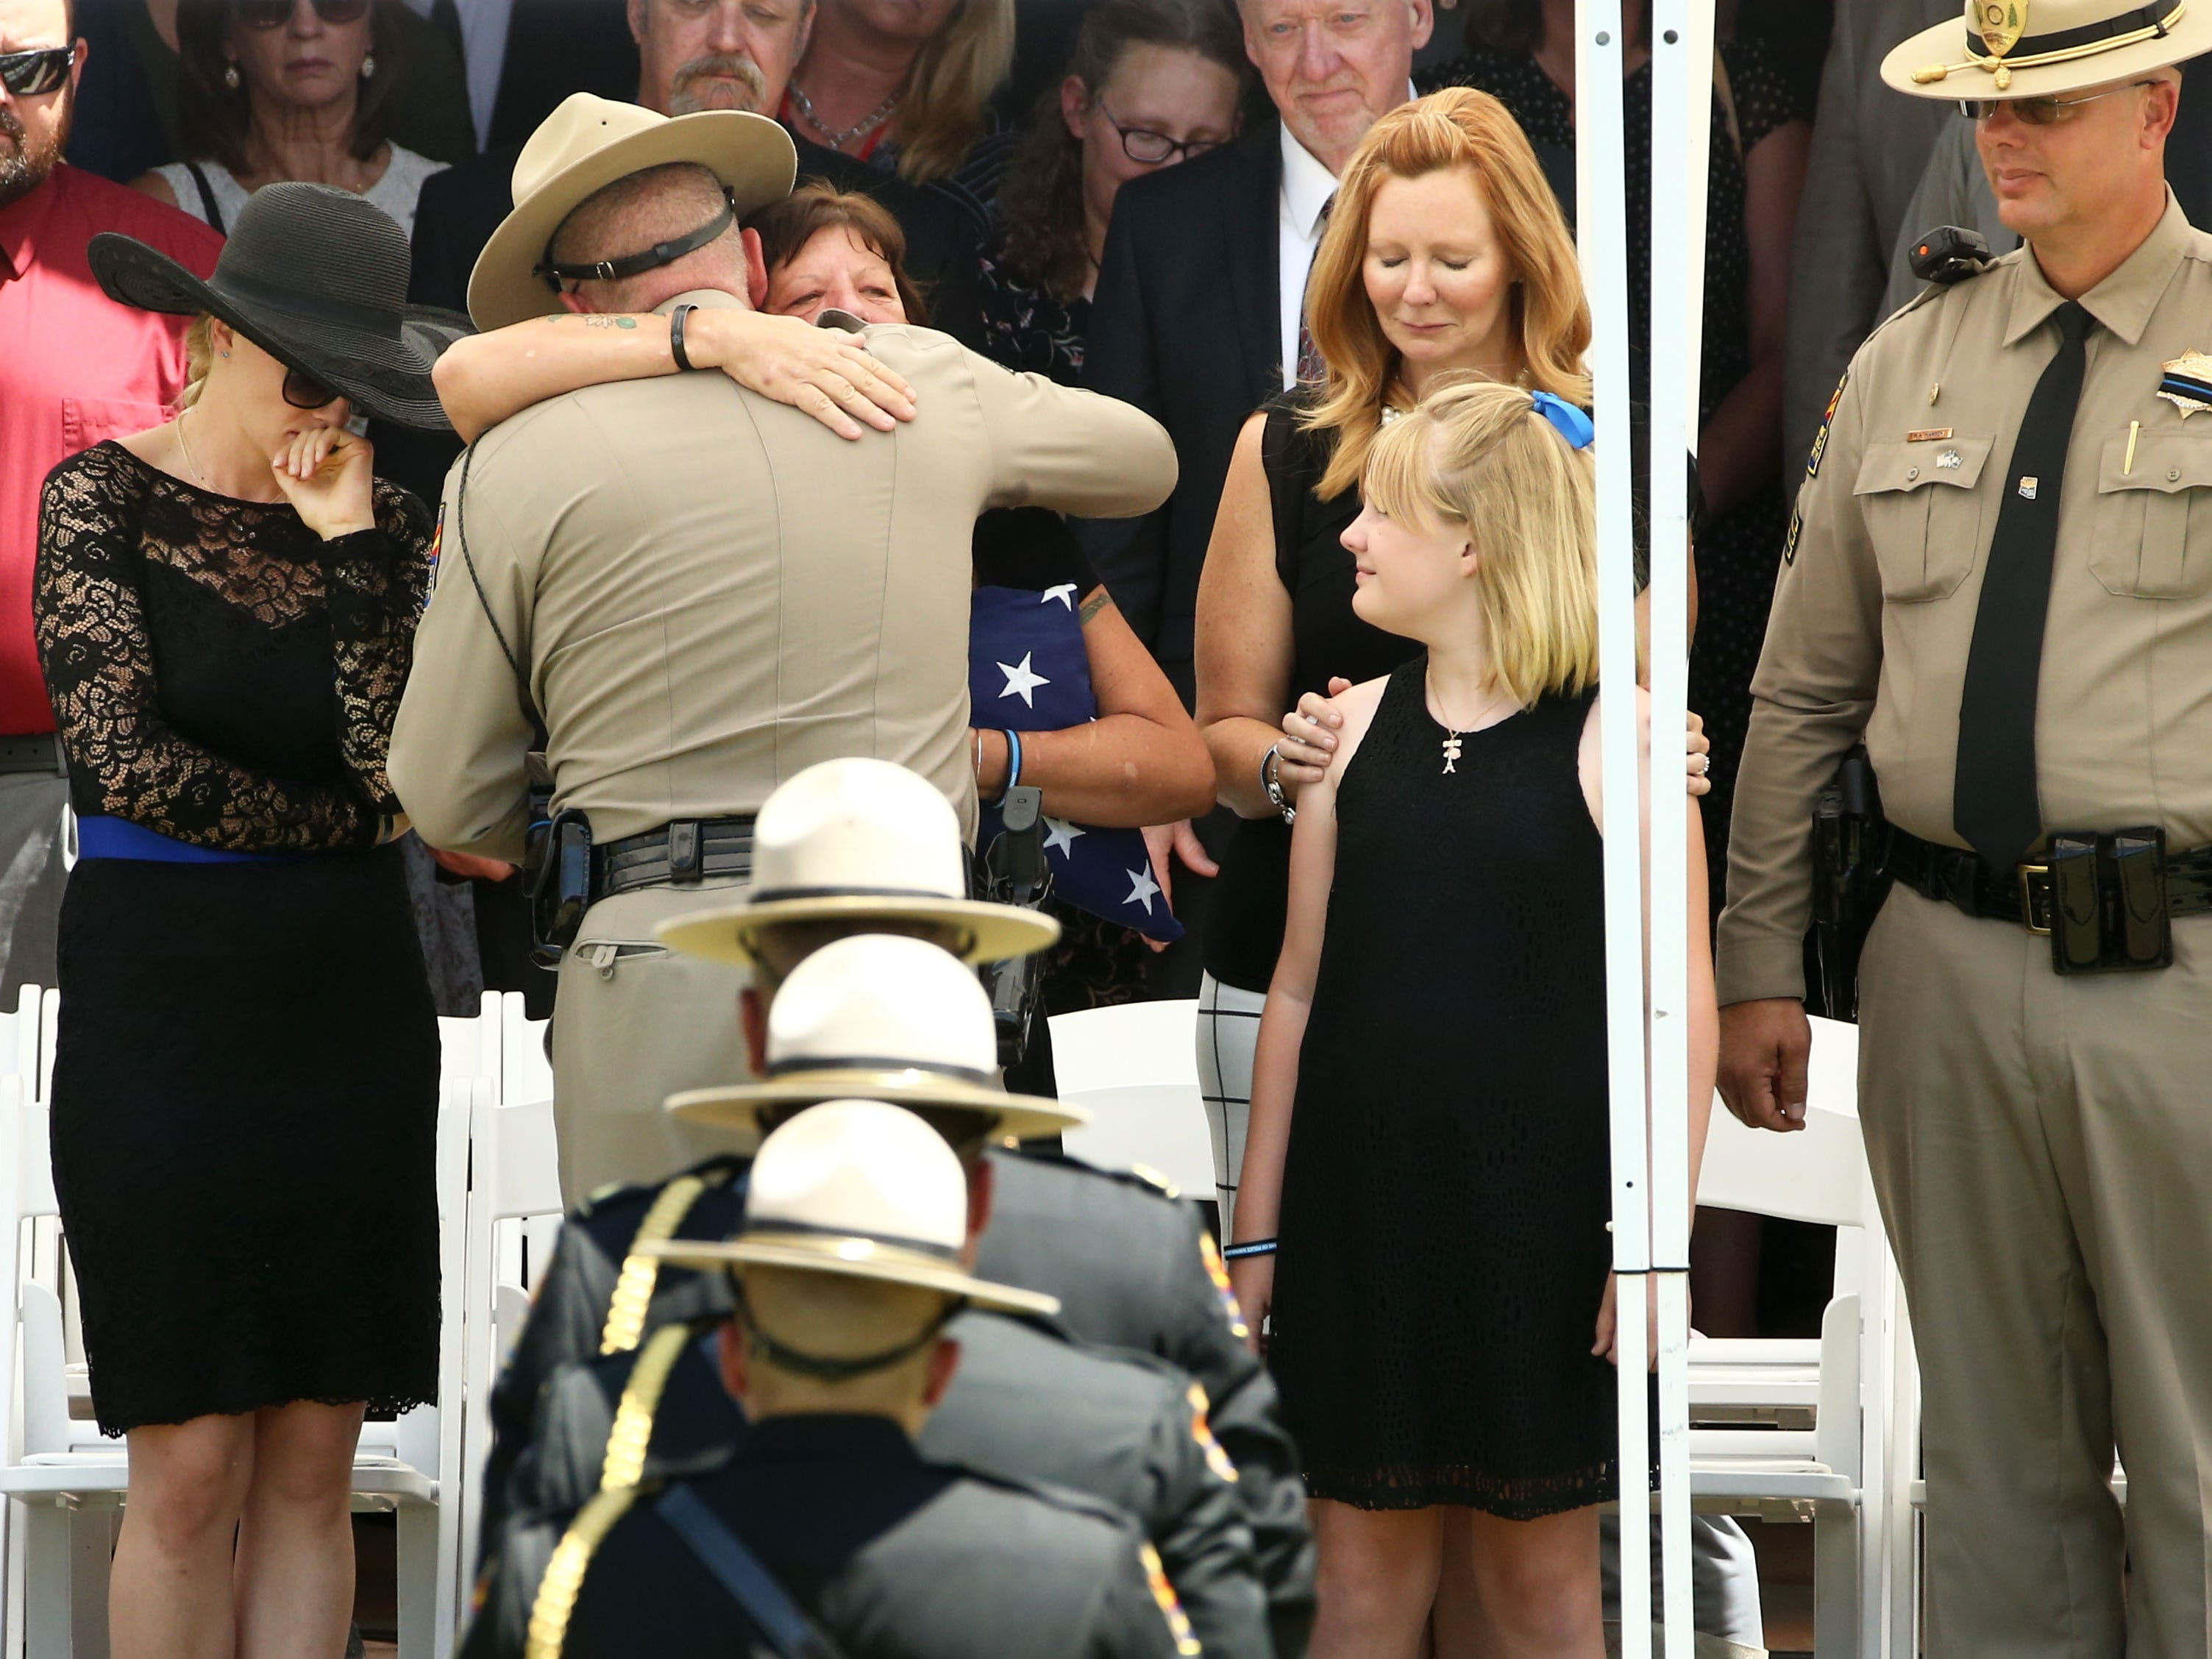 DPS Colonel Frank Milstead hugs the mother of fallen DPS Trooper Tyler Edenhofer during his funeral services Aug. 3, 2018, at Christ's Church of the Valley in Peoria.